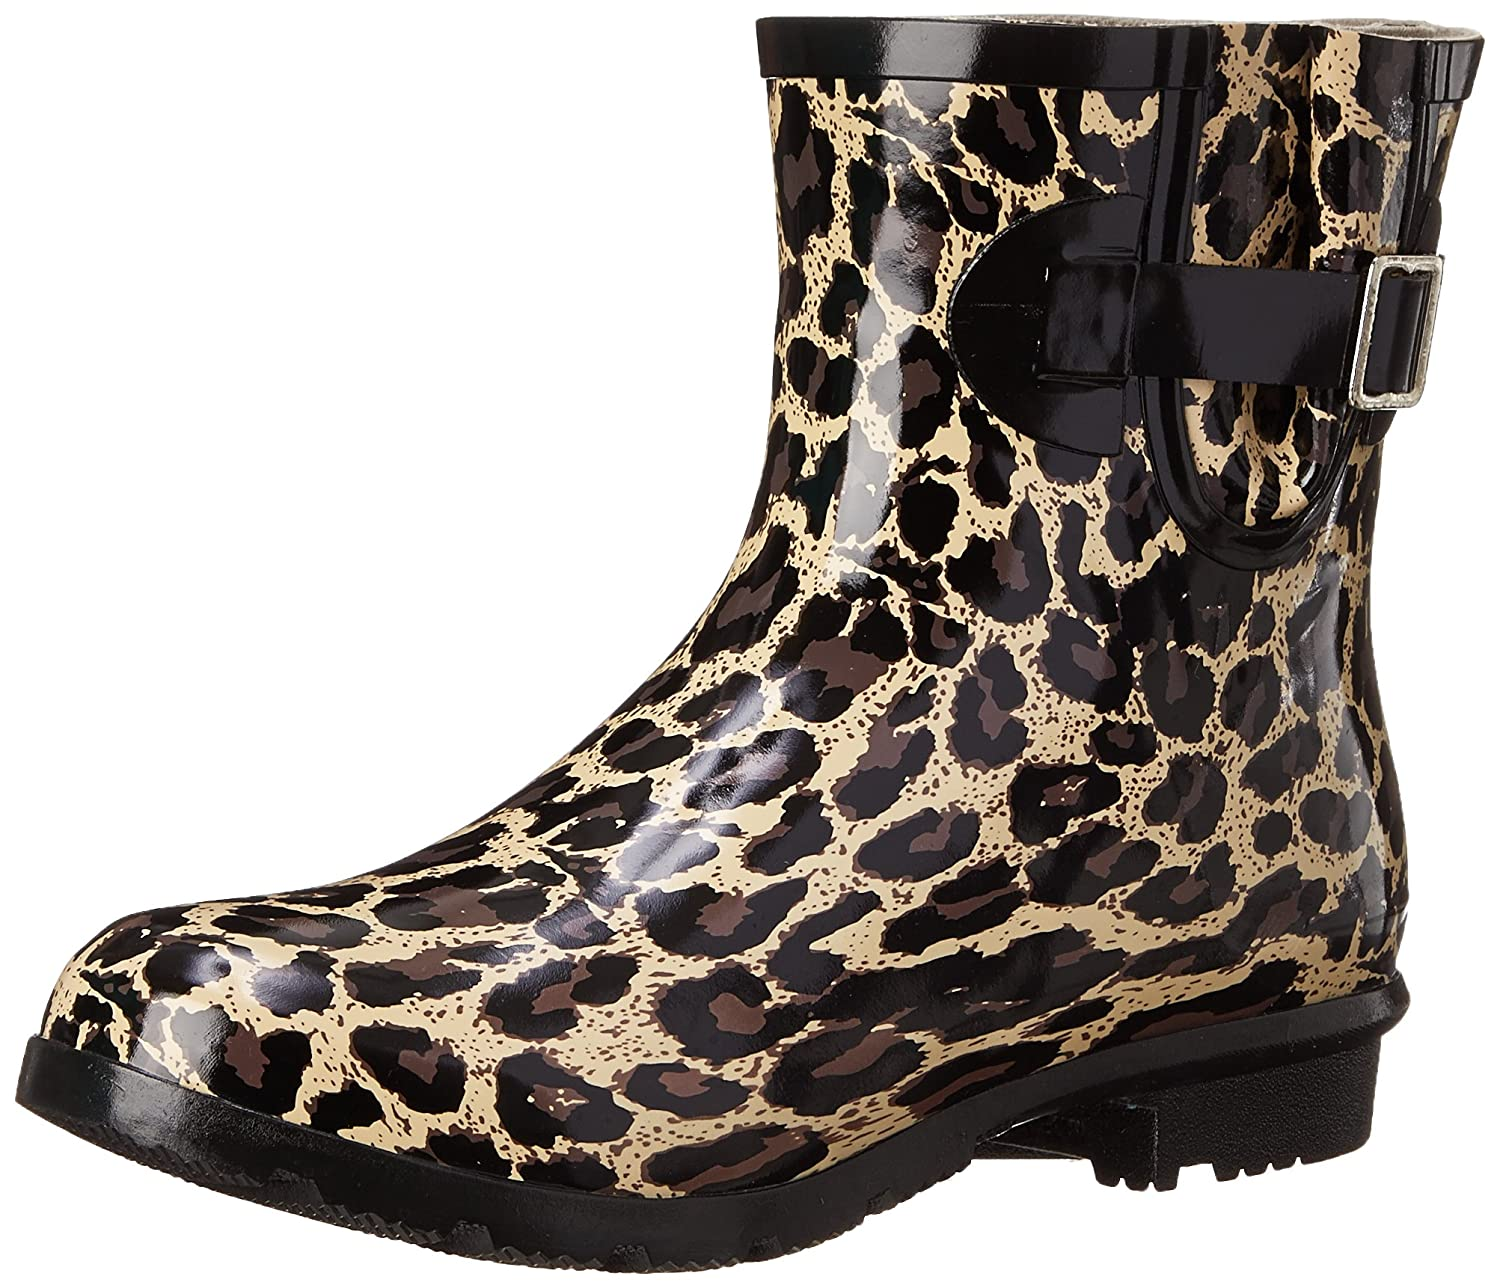 Taupe Nomad Women's Droplet Rain Boot